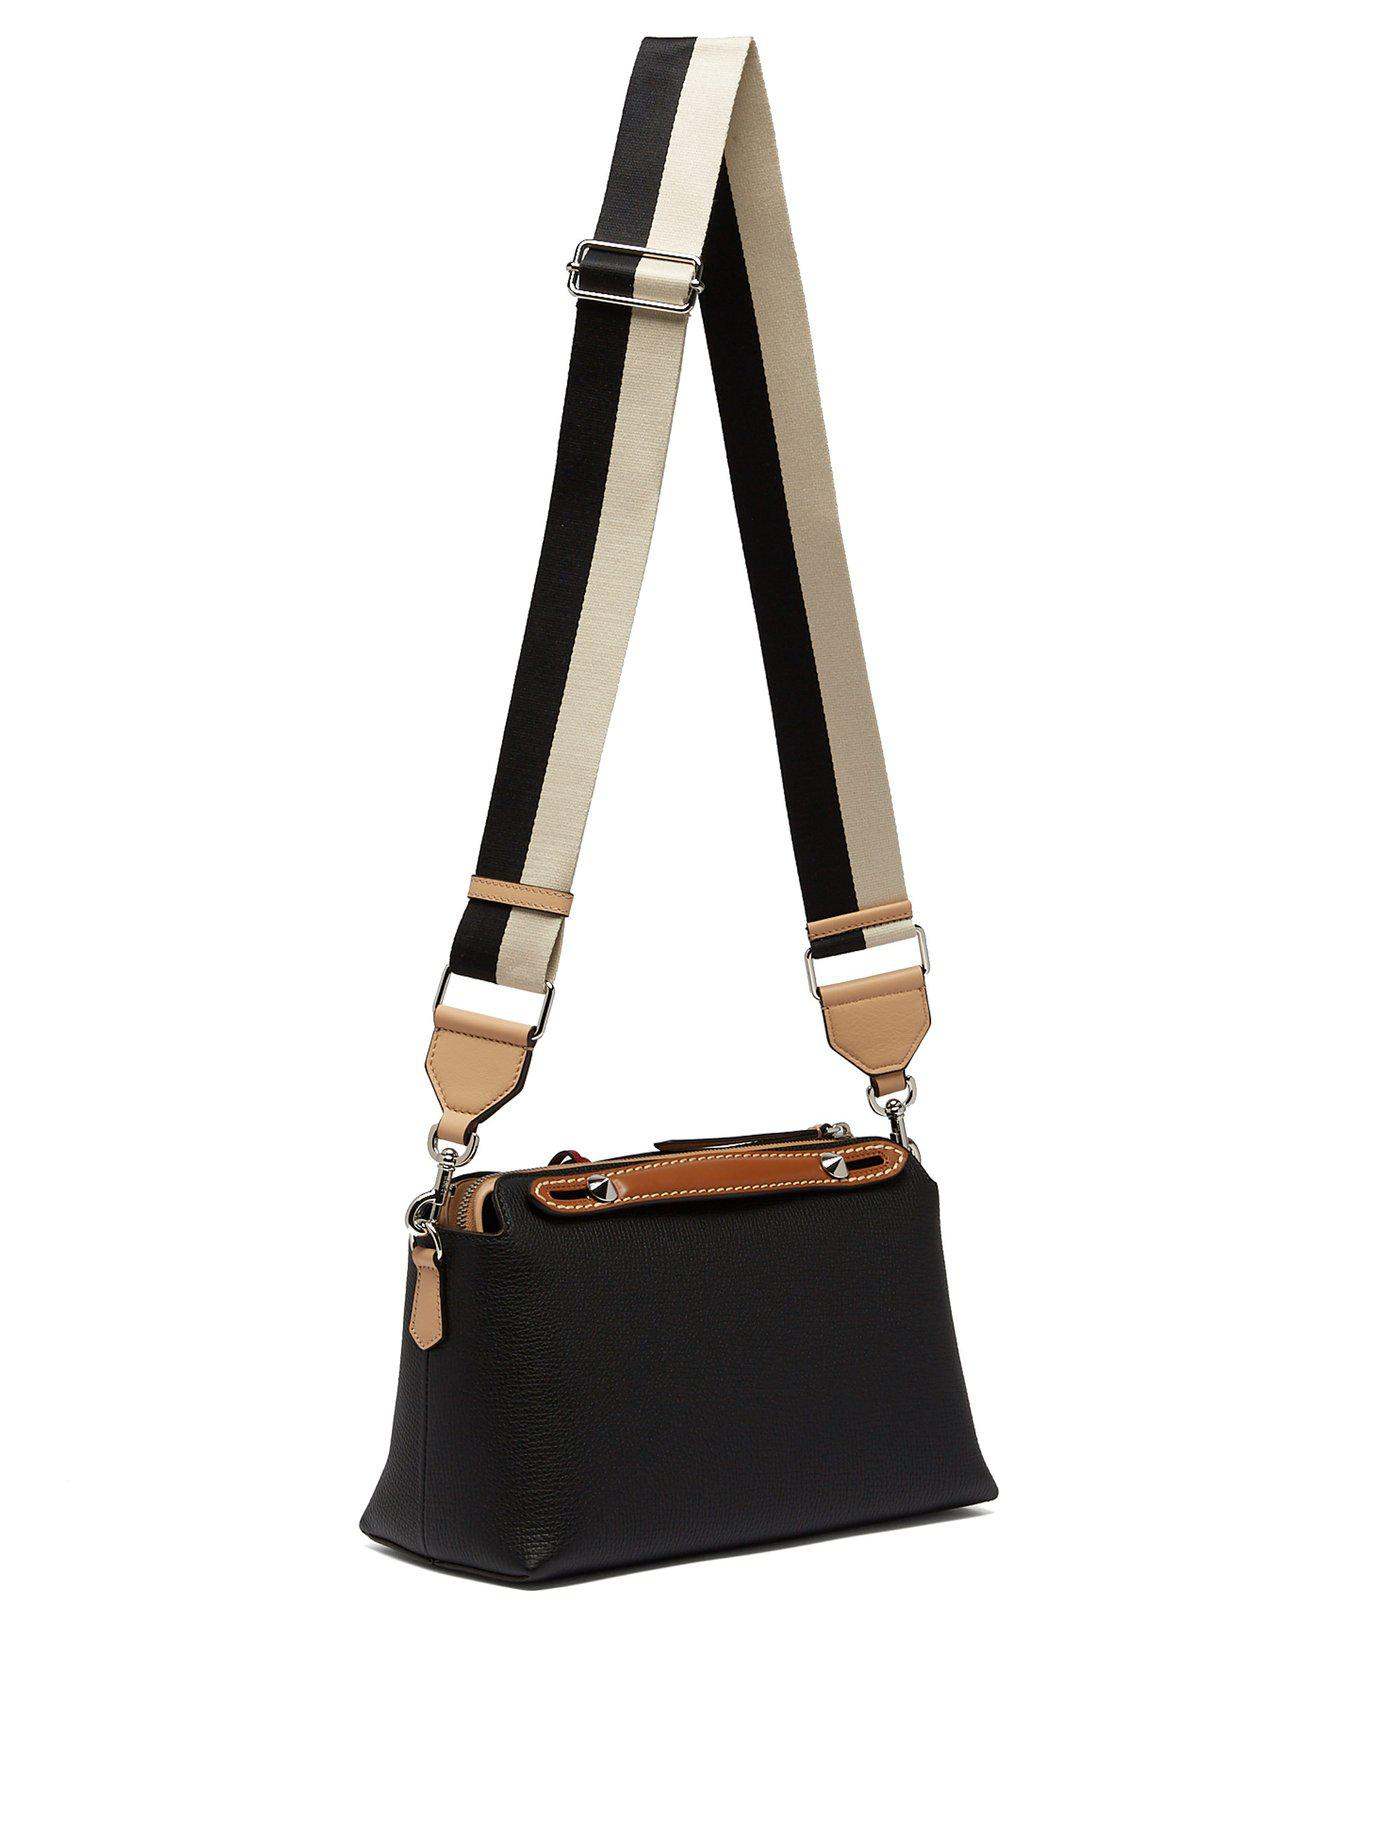 f4a9cba45e68 Fendi - Black By The Way Tri Colour Leather Cross Body Bag - Lyst. View  fullscreen